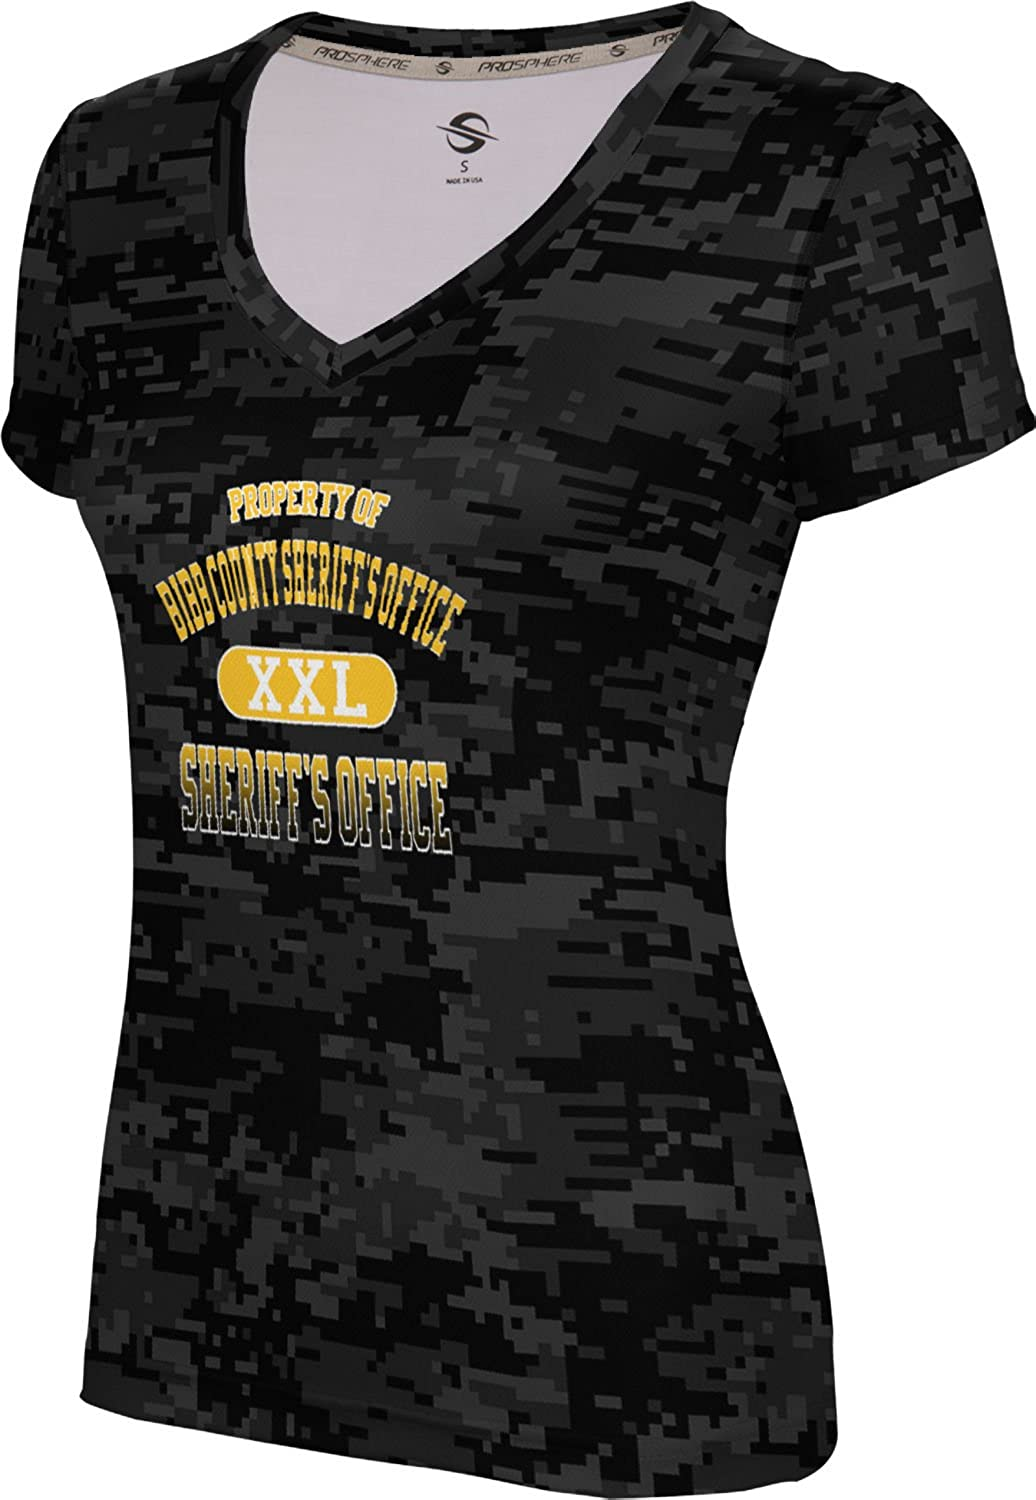 ProSphere Women's Bibb County Sheriff's Office Digital SL V-Neck Training Tee